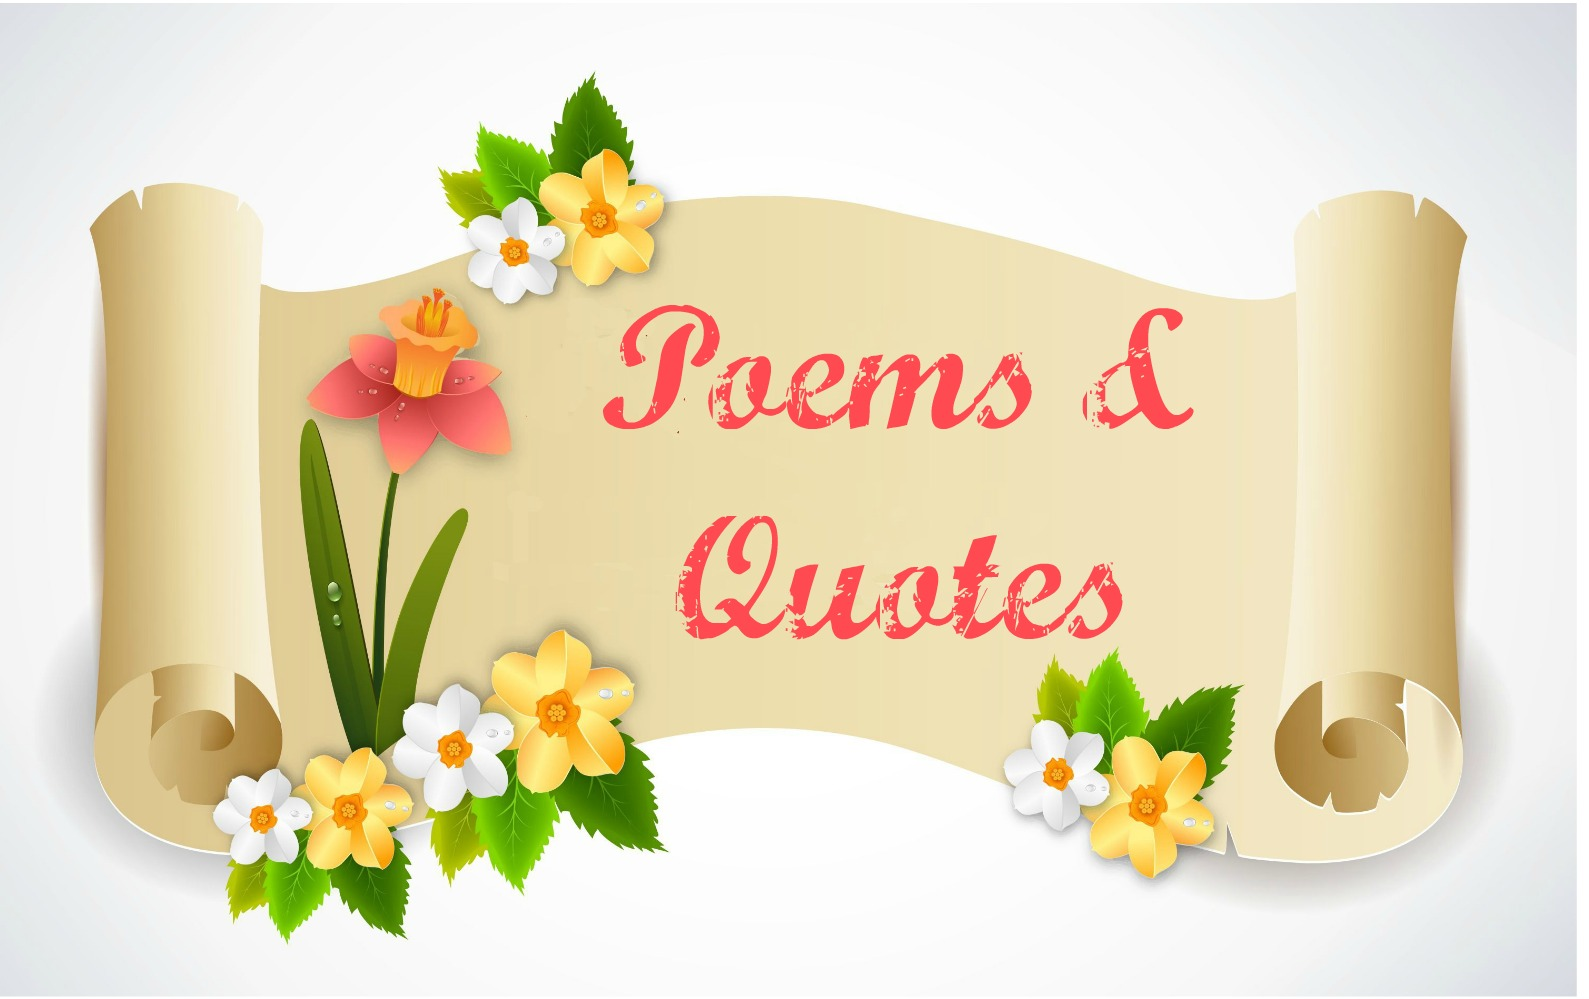 Daycare Poems And Quotes And More!